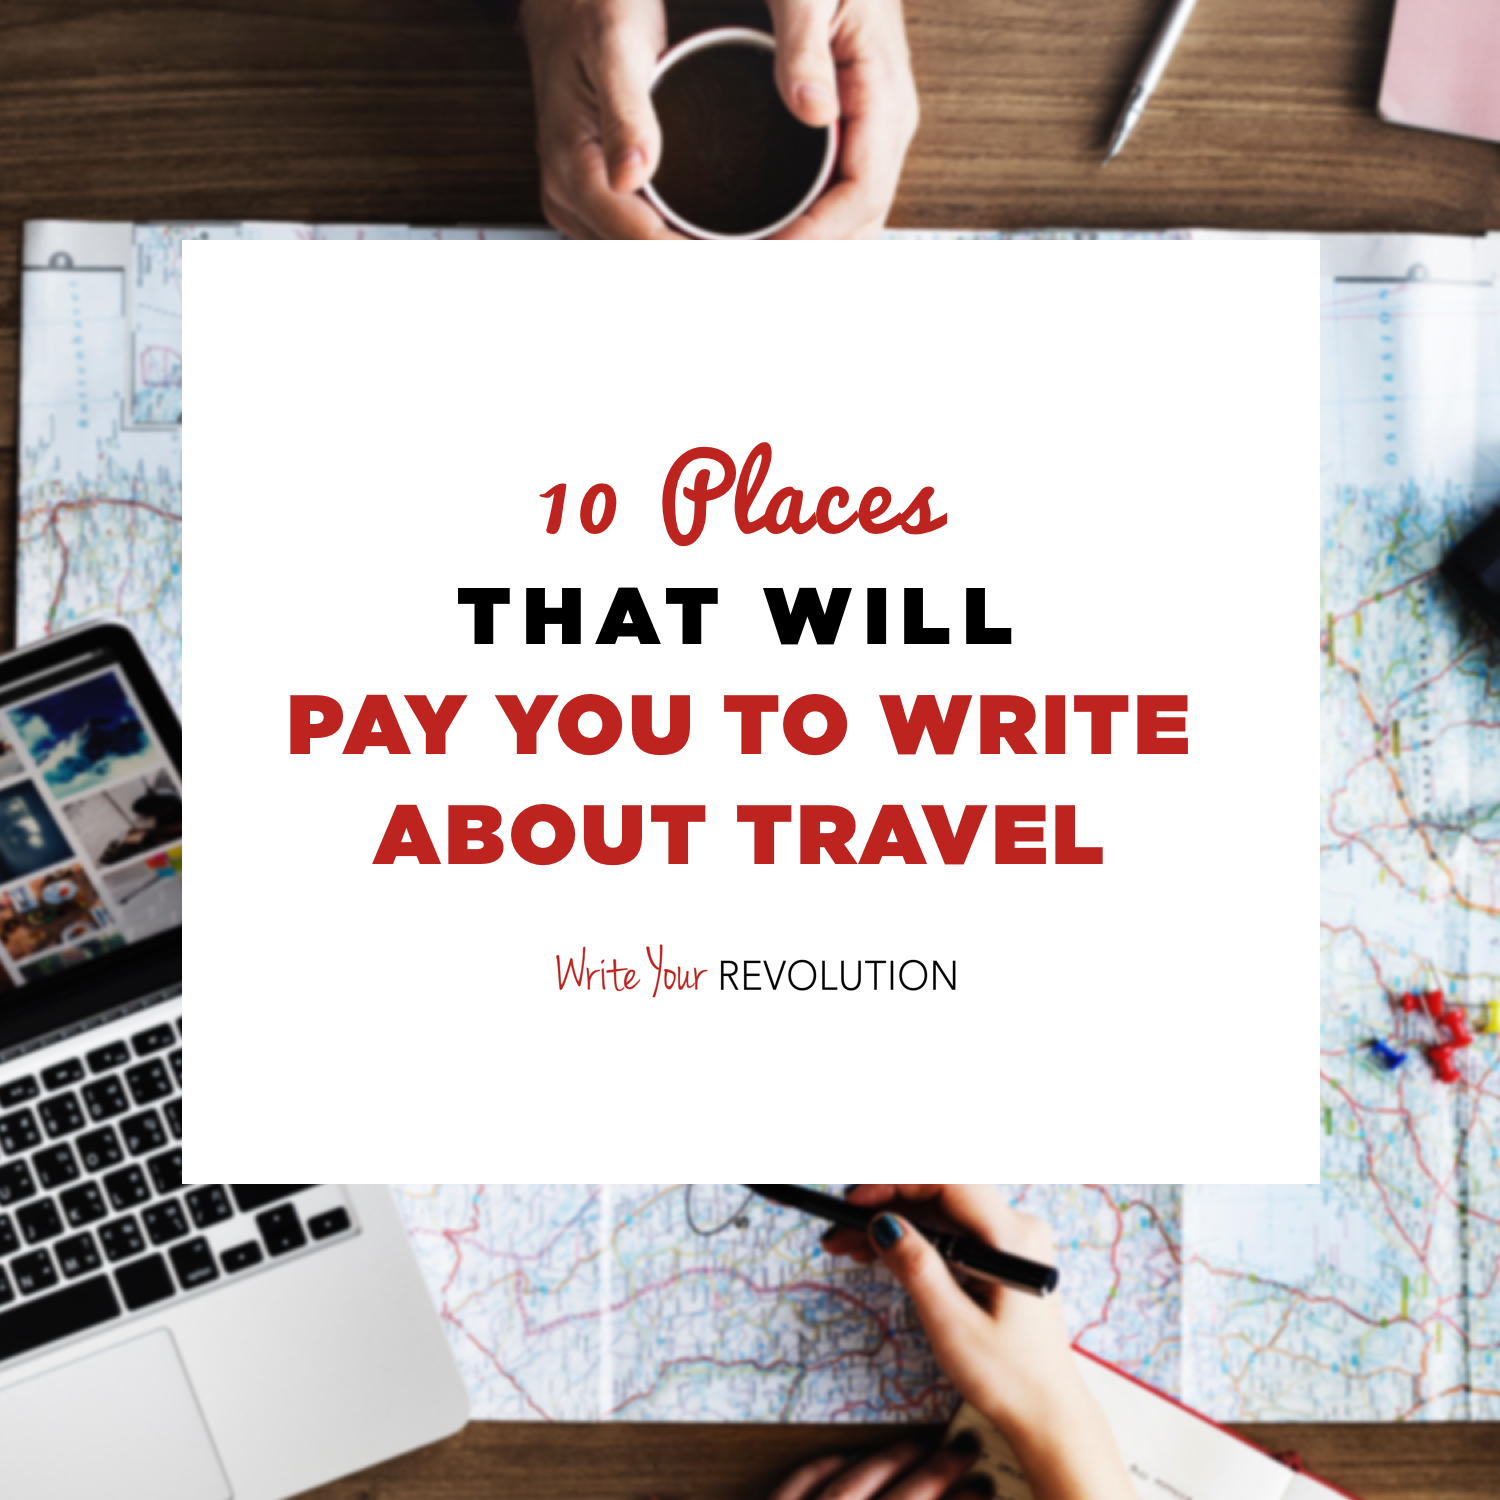 10 Places That Will Pay You to Write About Travel